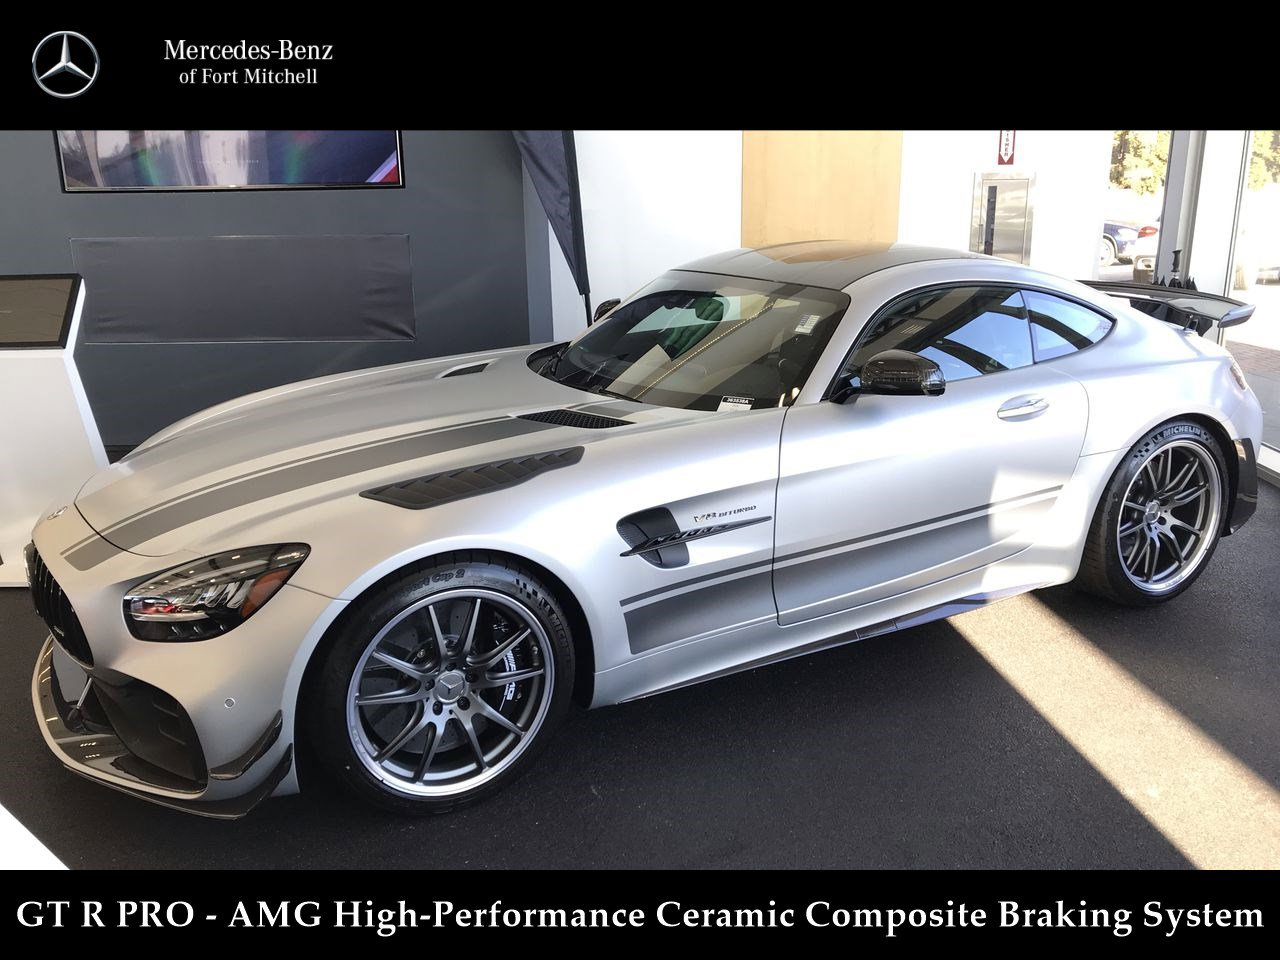 Pre-Owned 2020 Mercedes-Benz GT R